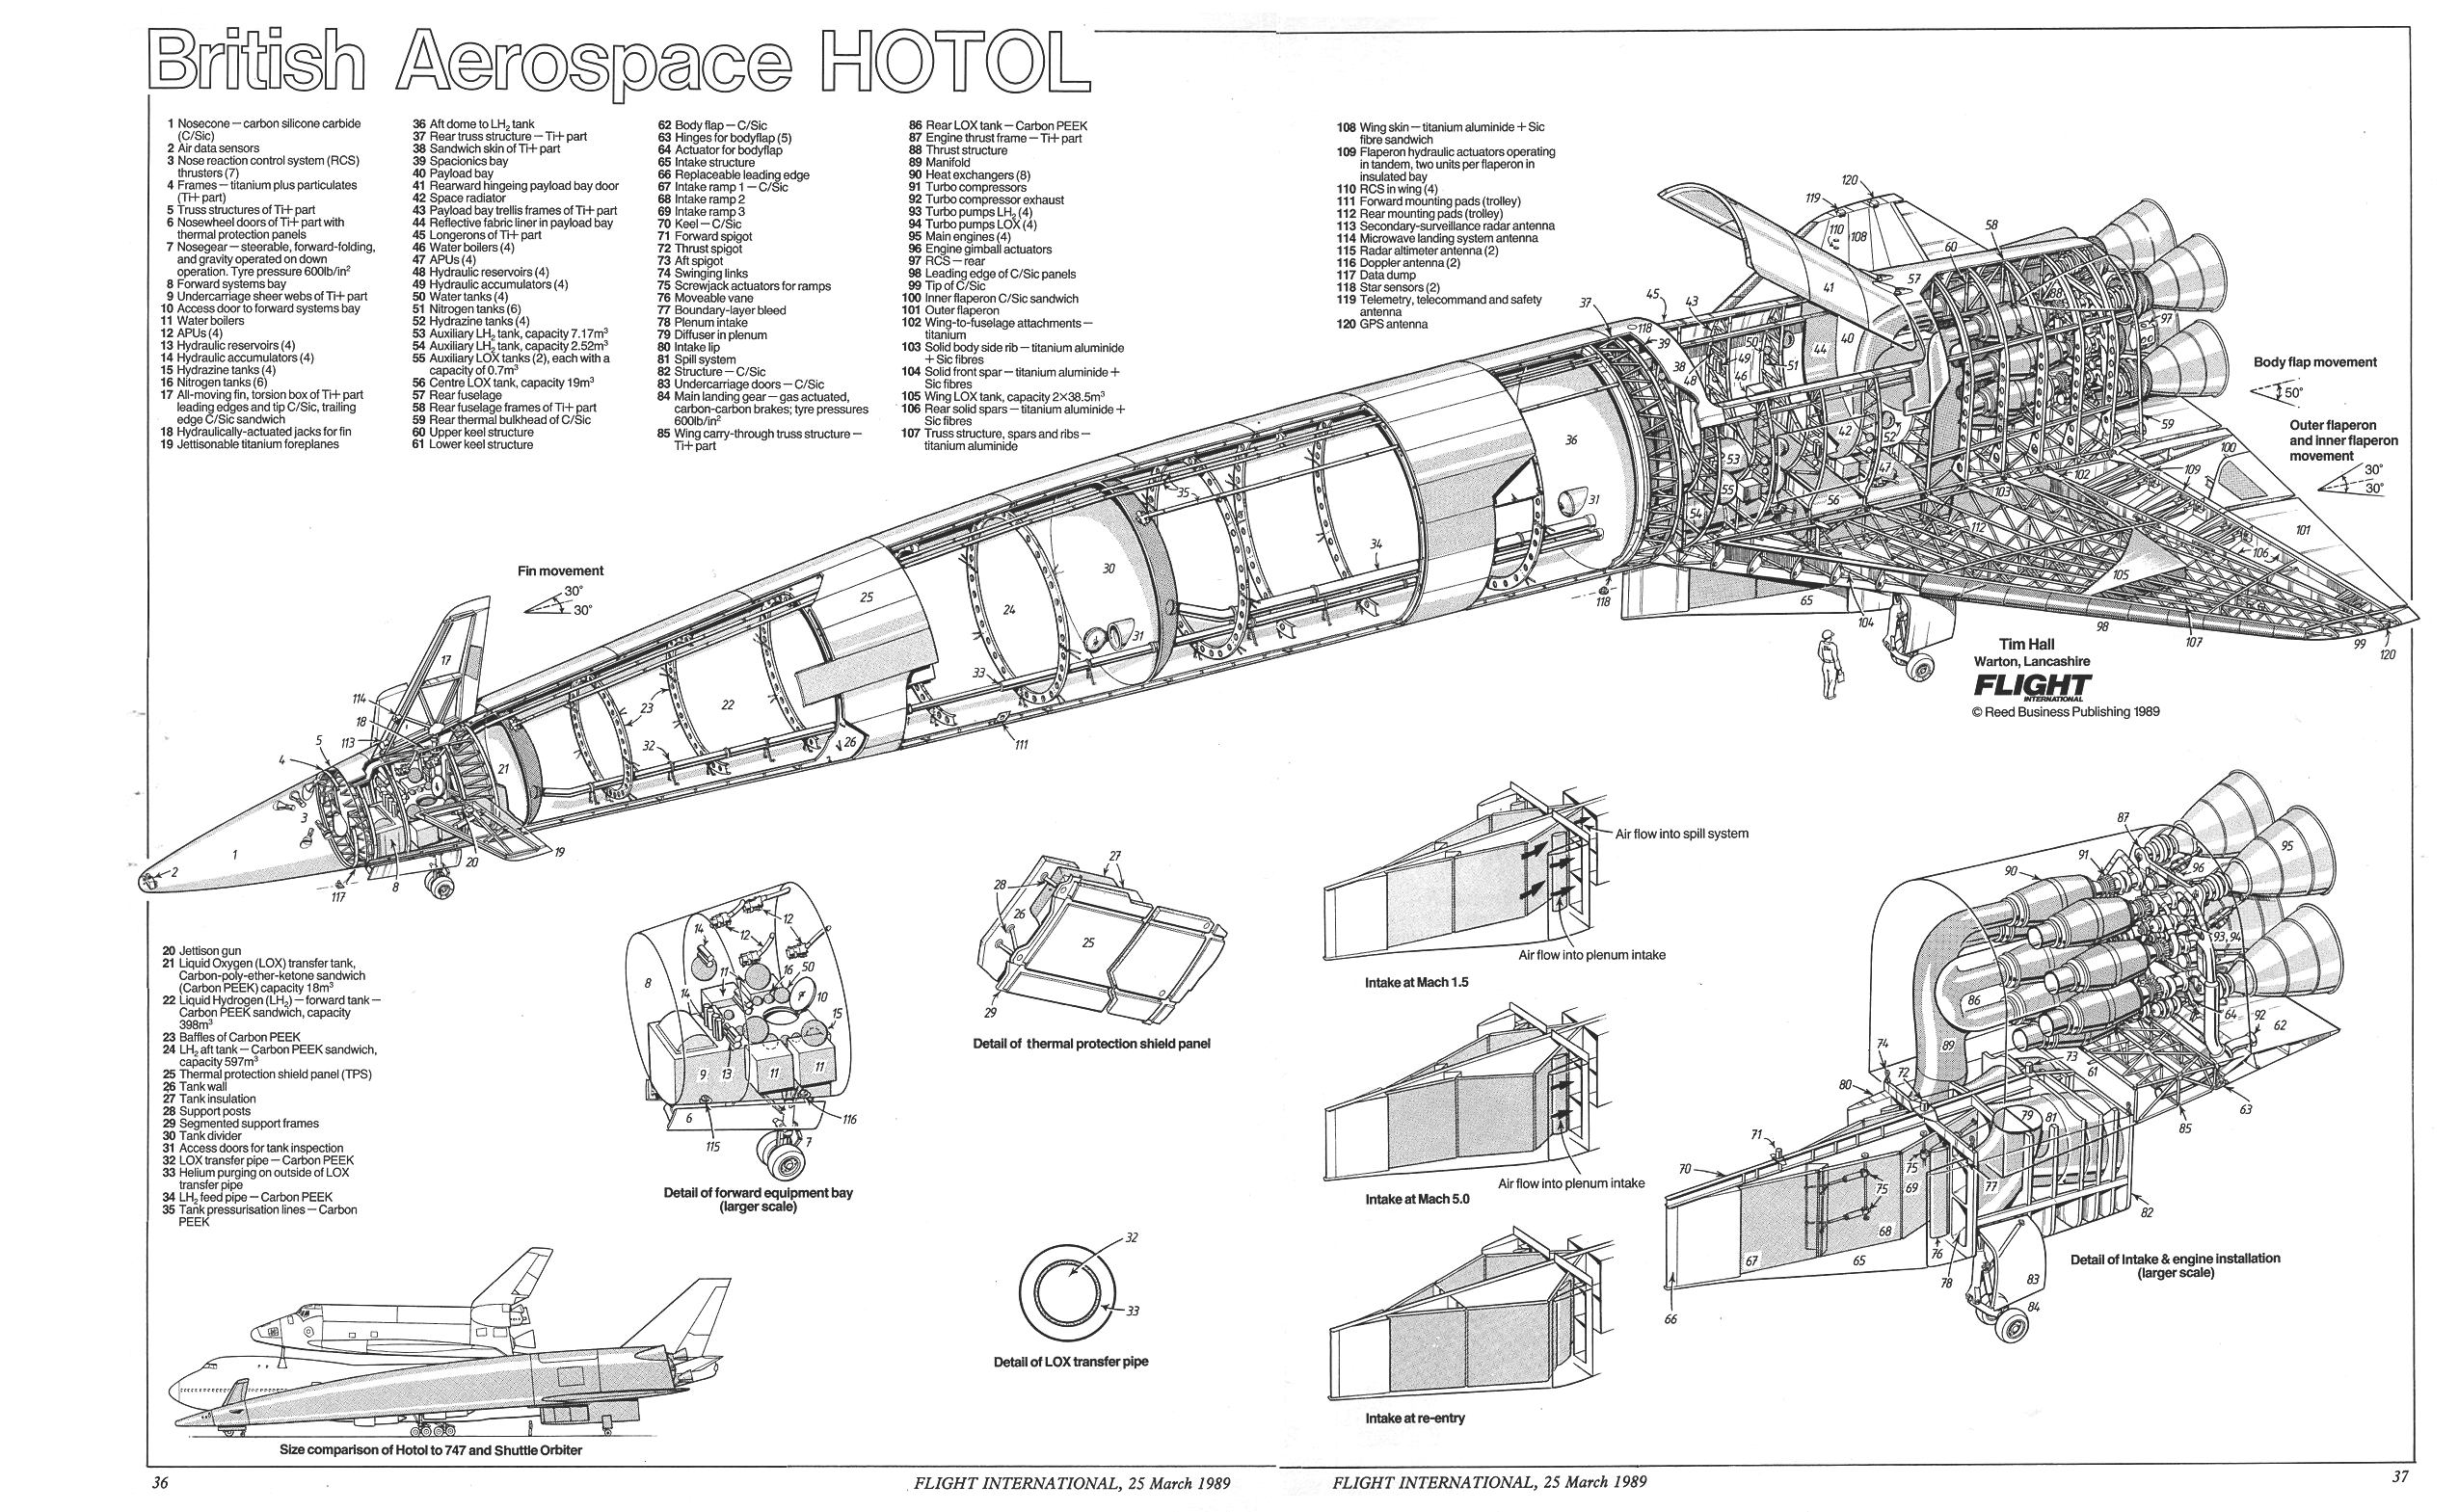 Why aren't multi engines space planes used? : space